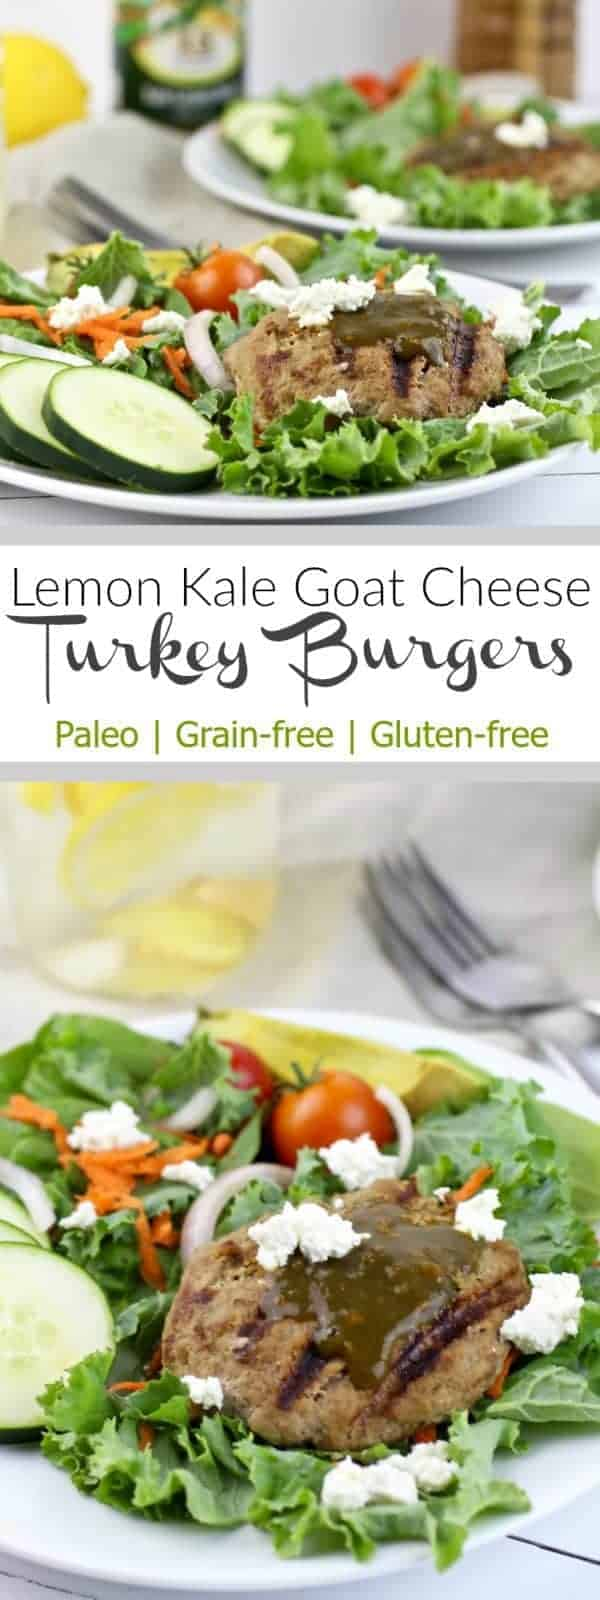 Never eat a boring burger again! Lemon Kale Goat Cheese Turkey Burgers are easy to make, flavorful, and made with only 4 ingredients | Paleo | Gluten-free | Dairy-free Option | therealfoodrds.com